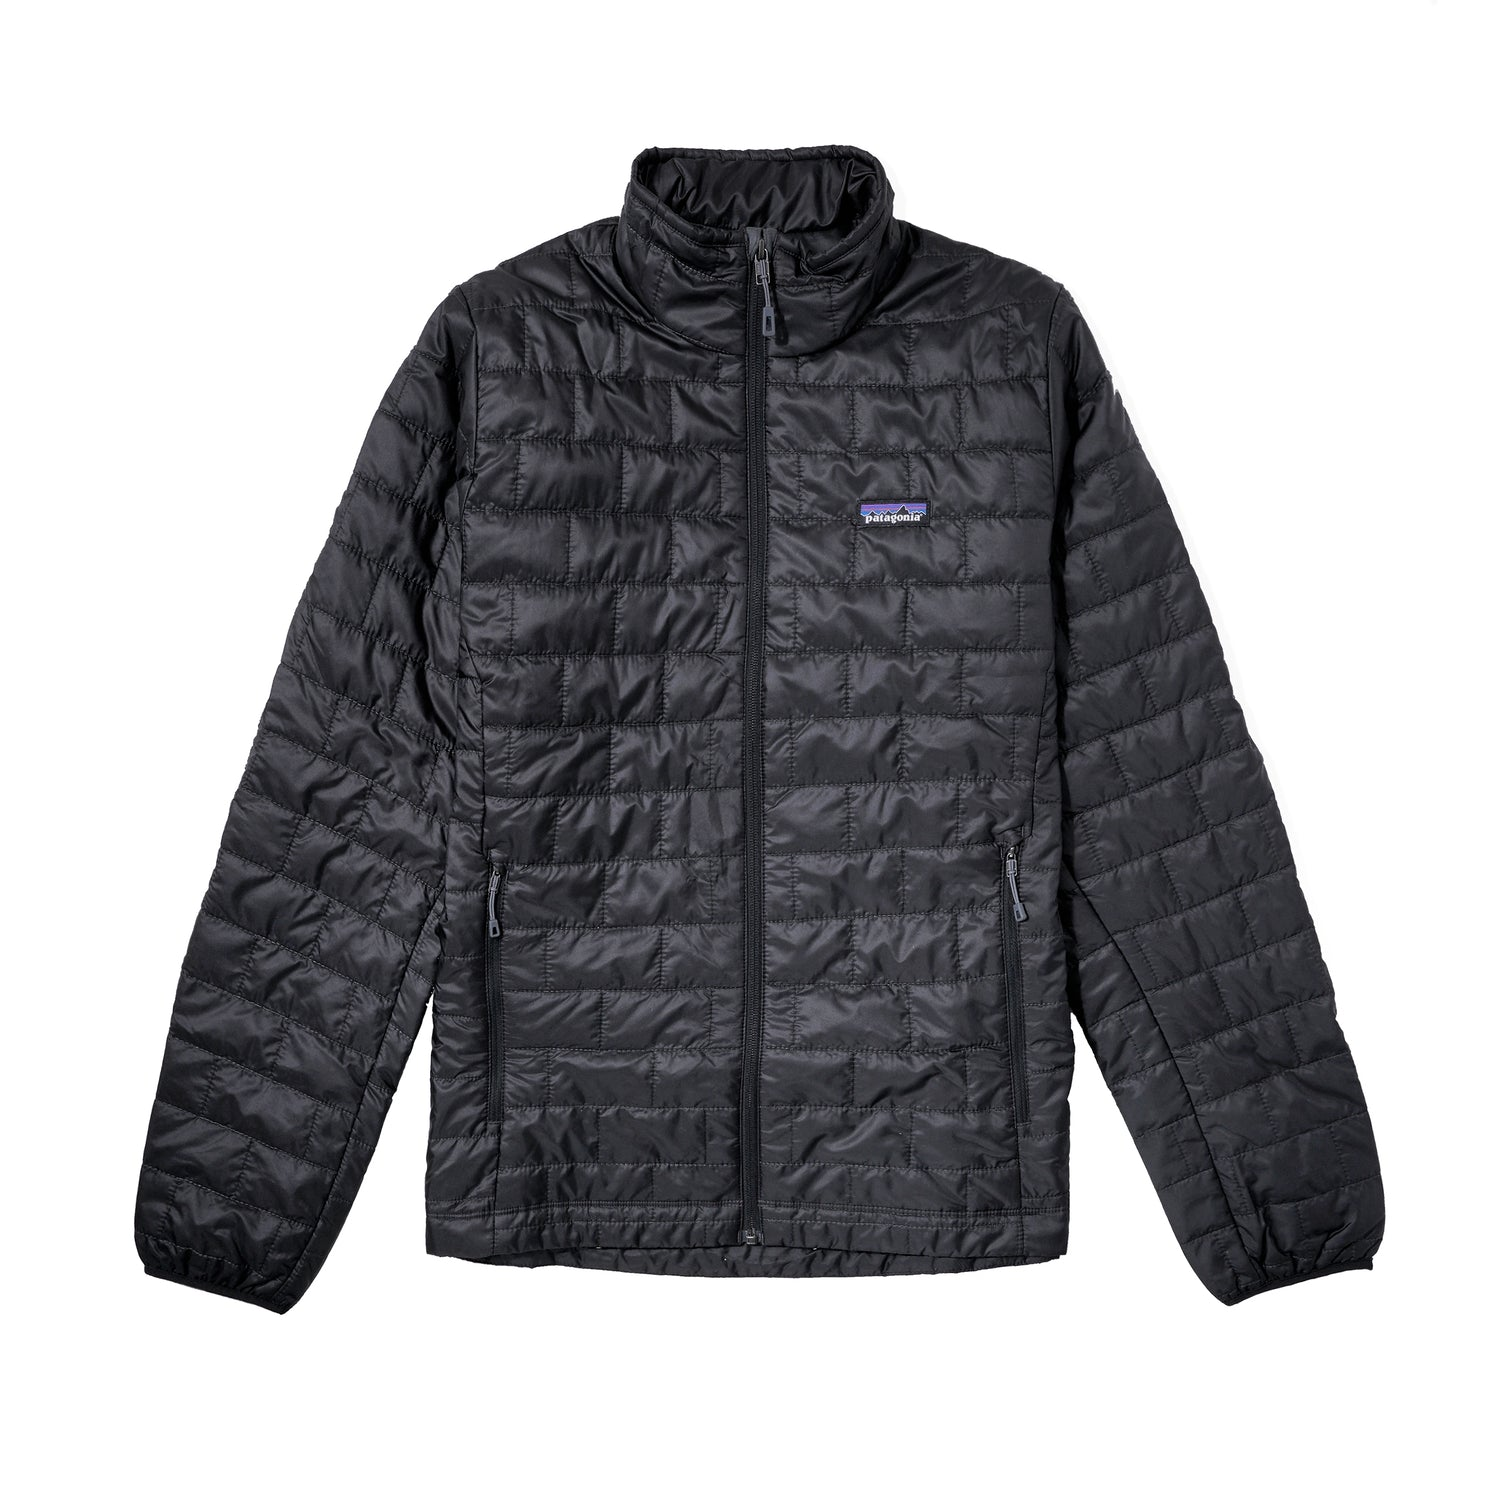 Nano Puff Jacket, Black